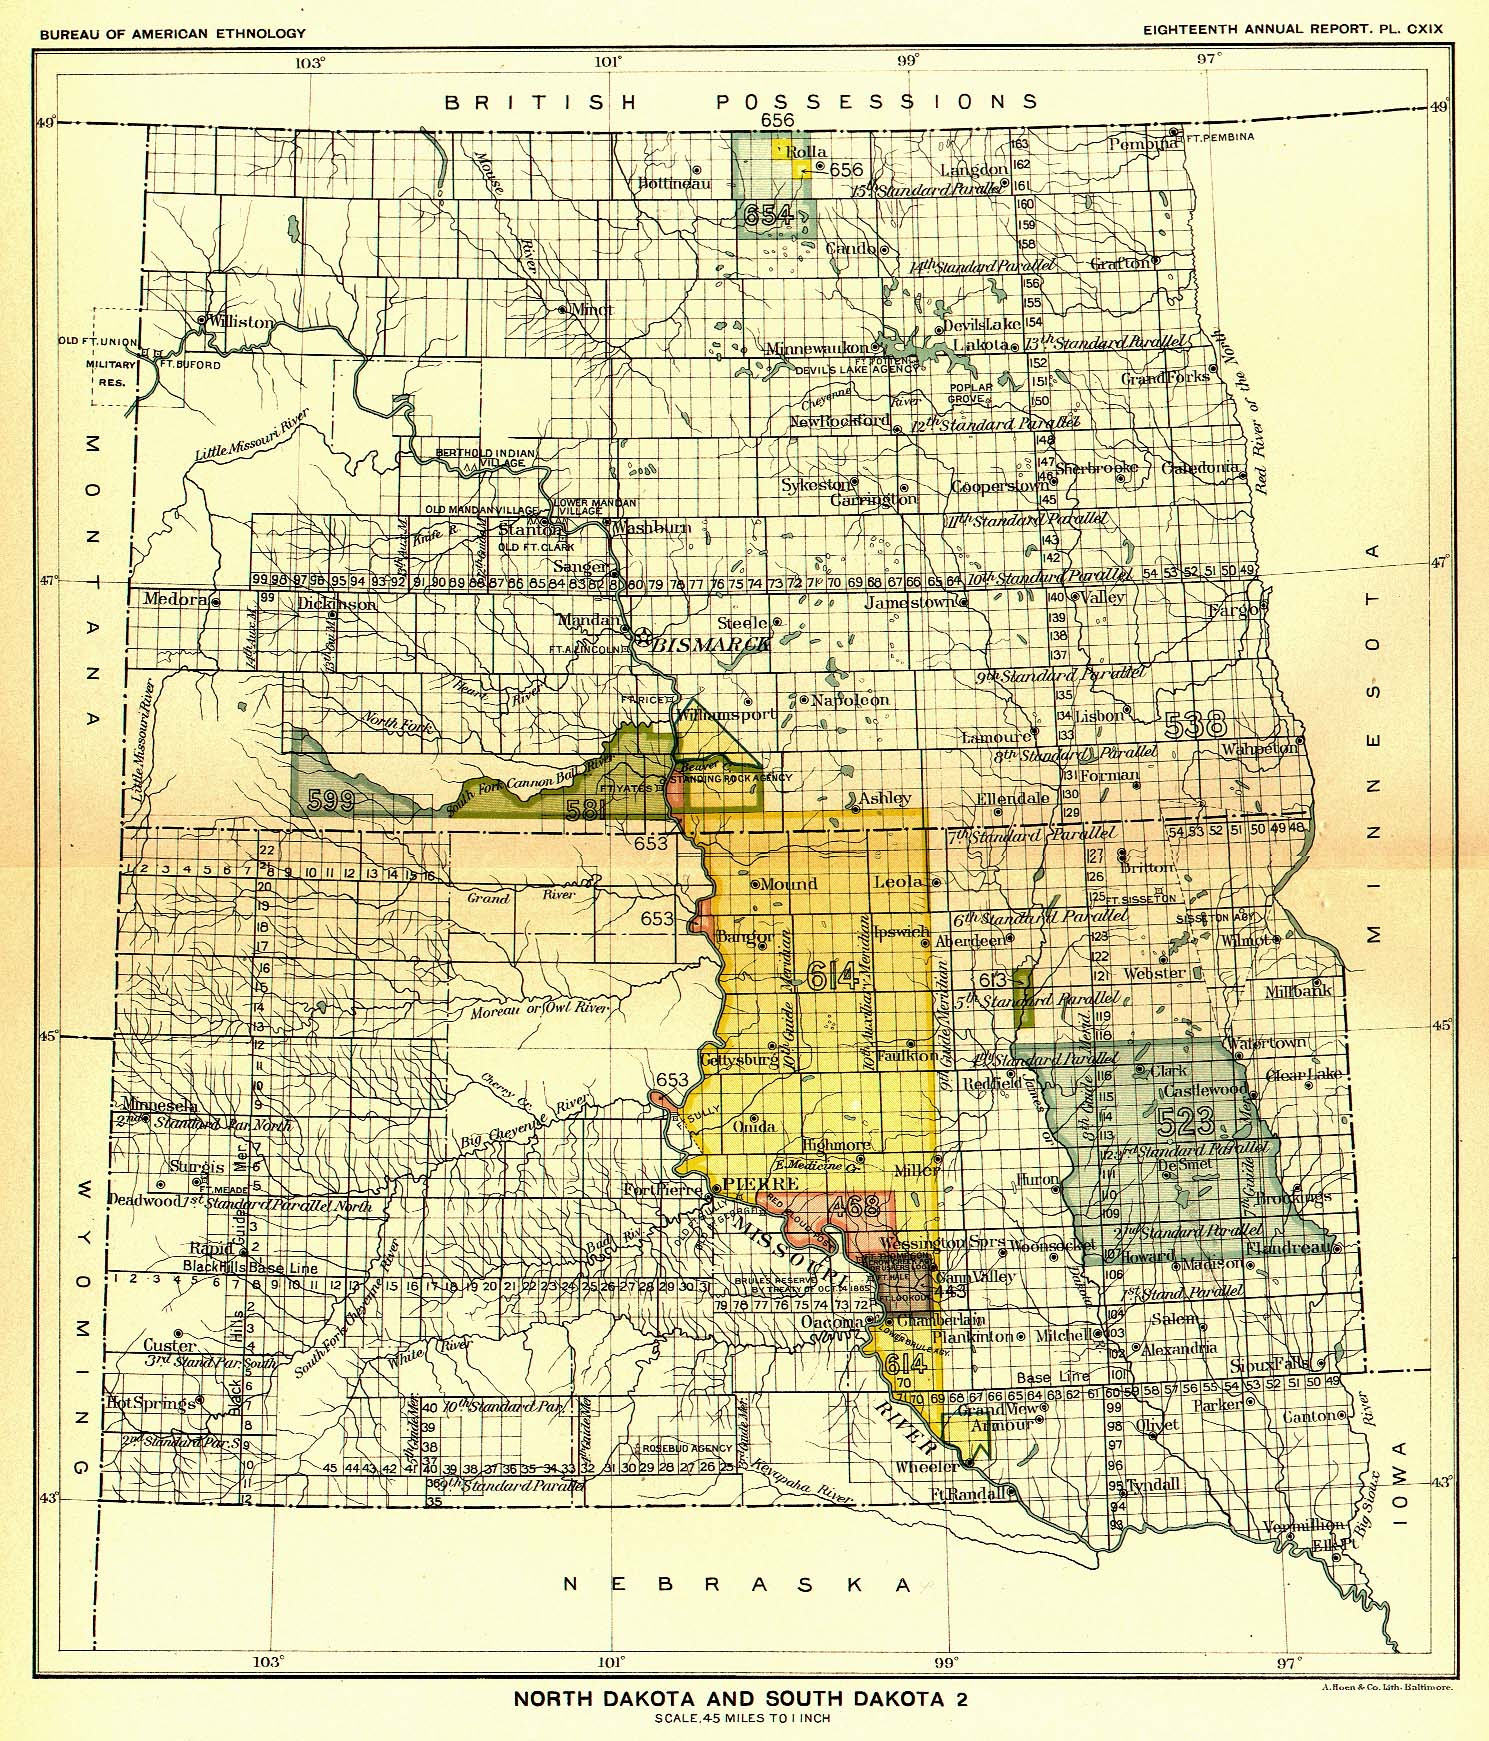 Indian Land Cessions in the U. S., North Dakota and South Dakota 2 ...